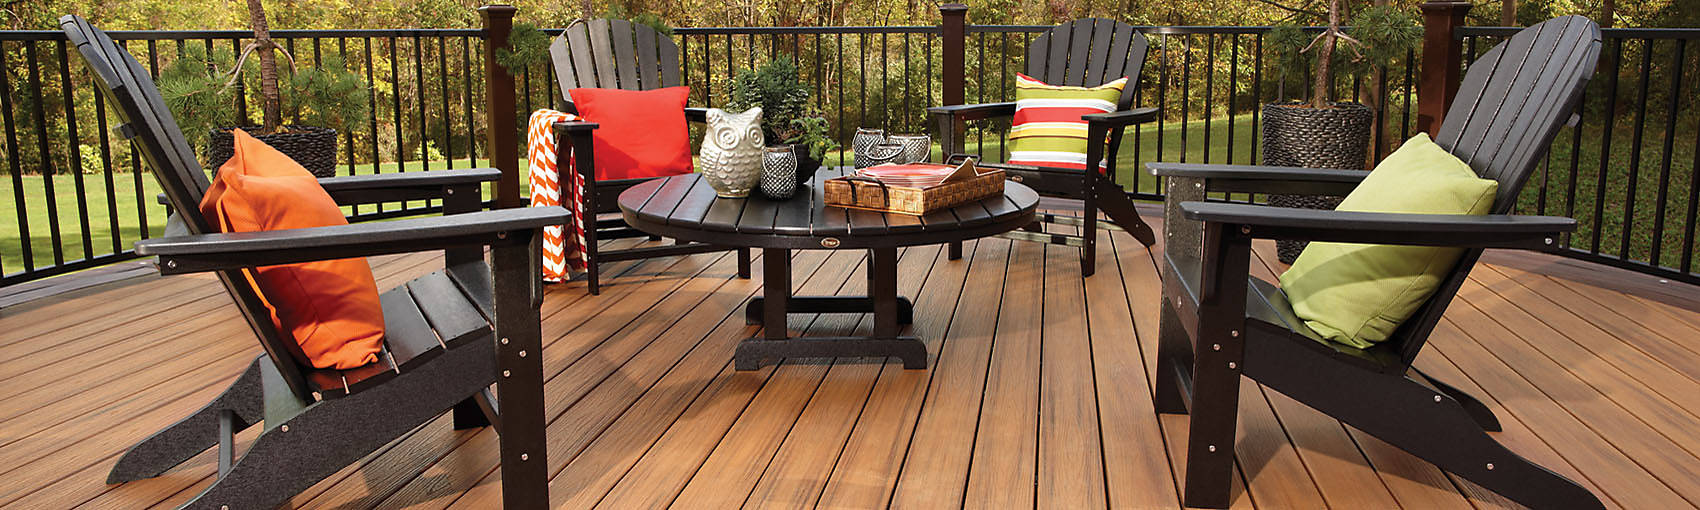 transcend-decking-reveal-railing-tiki-torch-chairs2